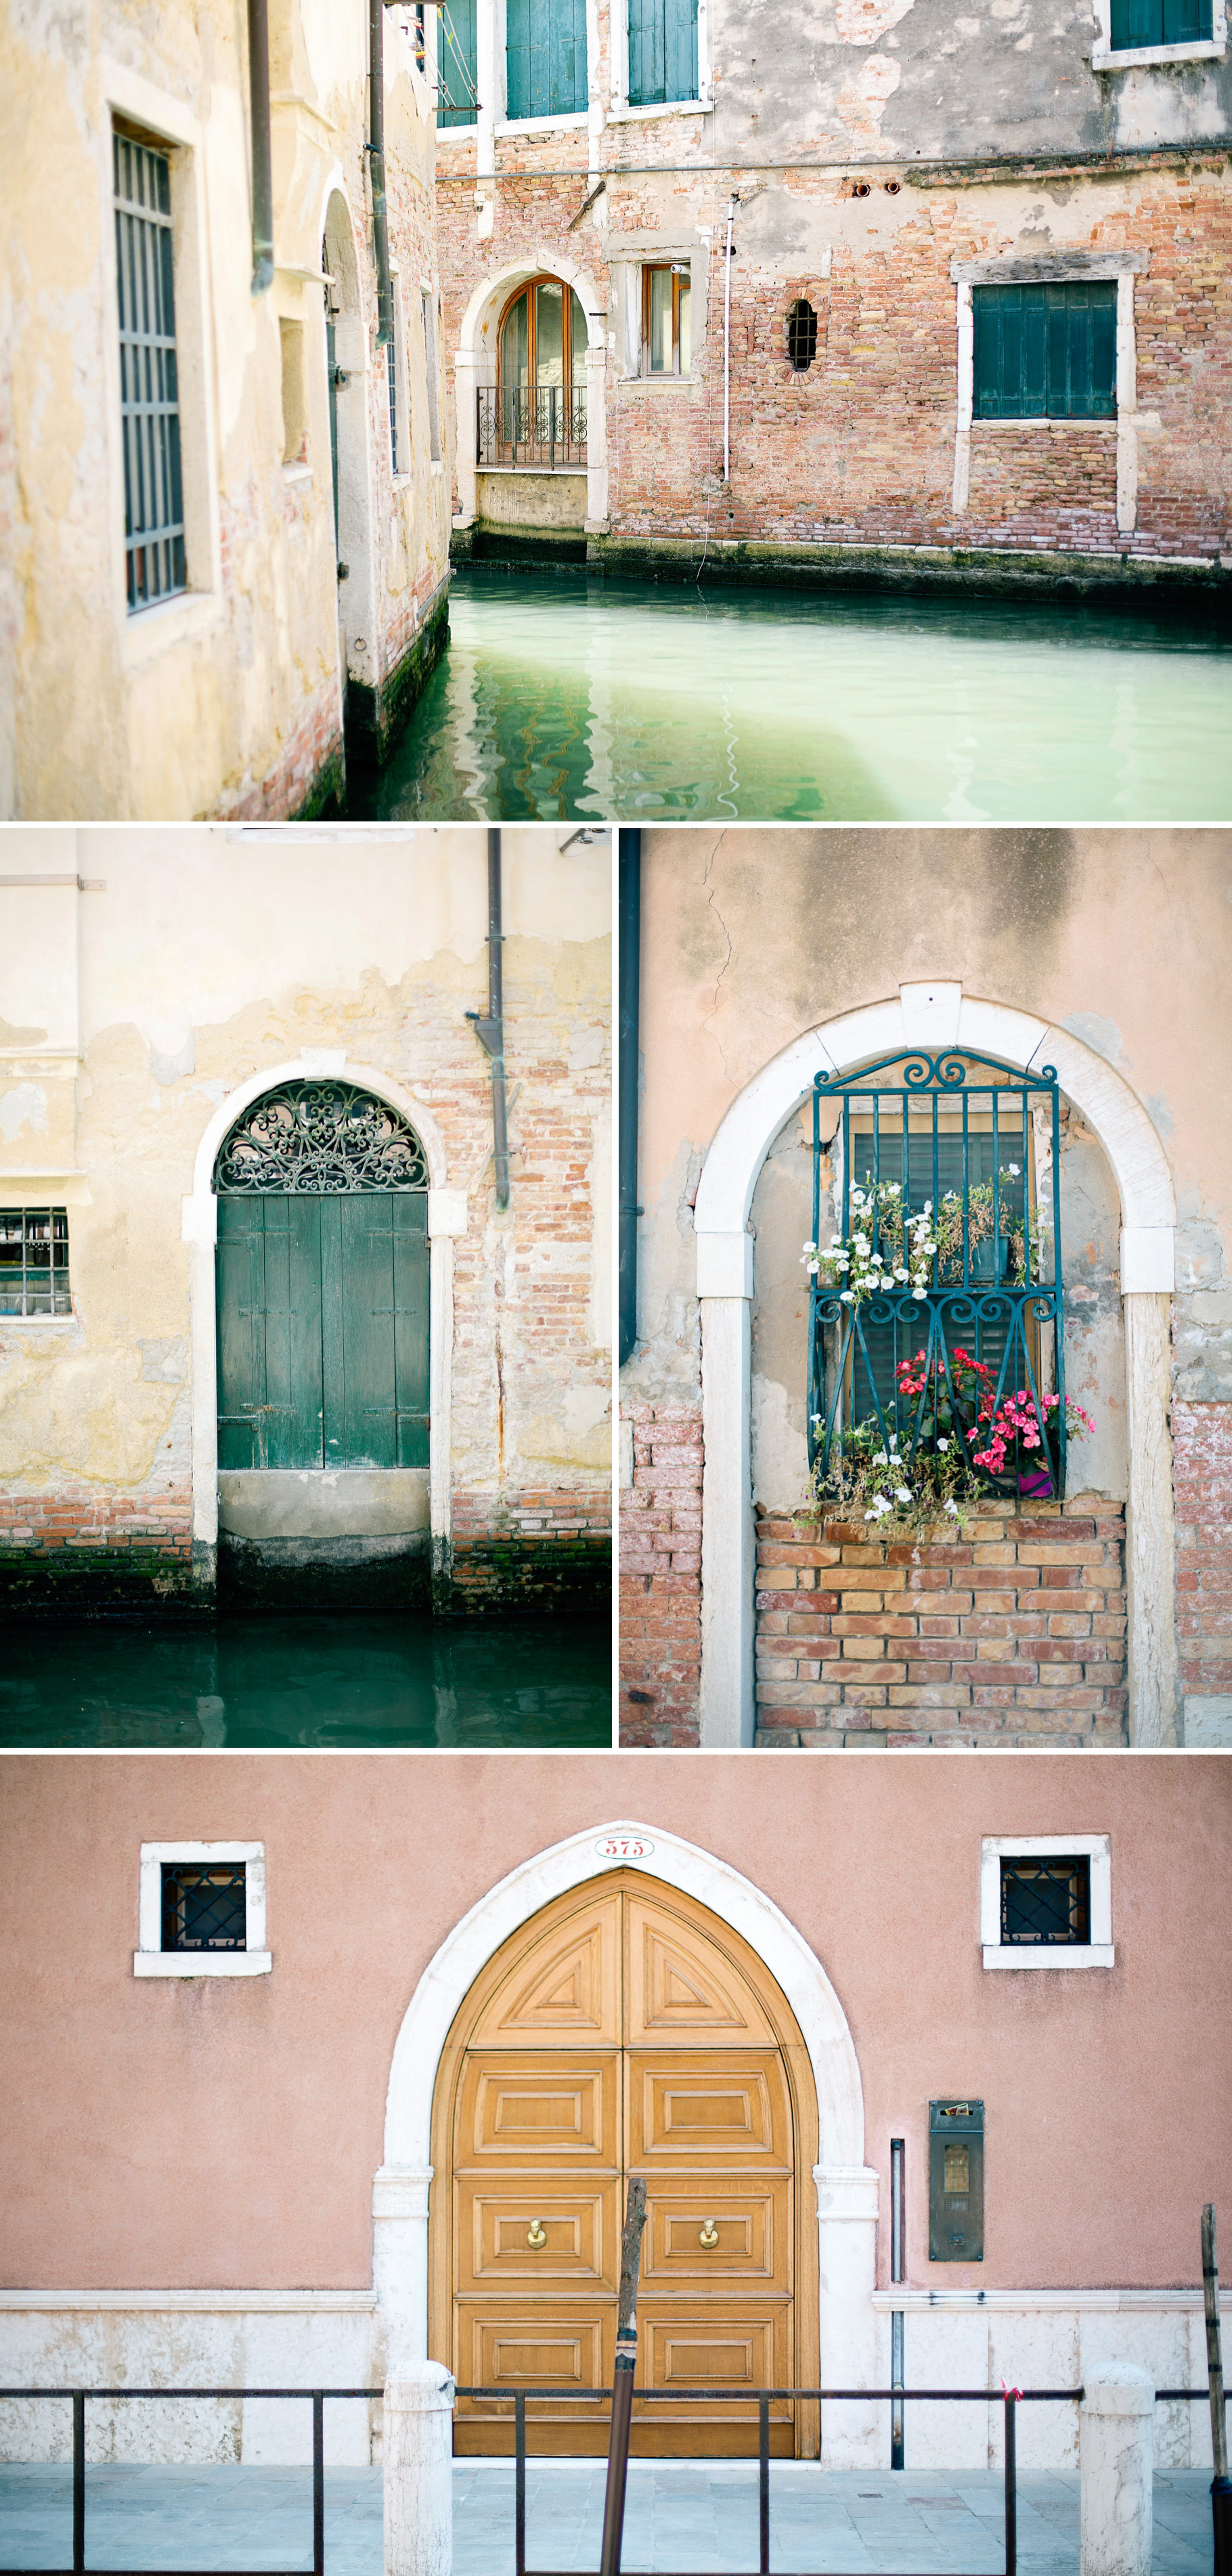 Venice-Italy-Europe-Travel-Anniversary-Trip-Photography-by-Betty-Elaine_0001